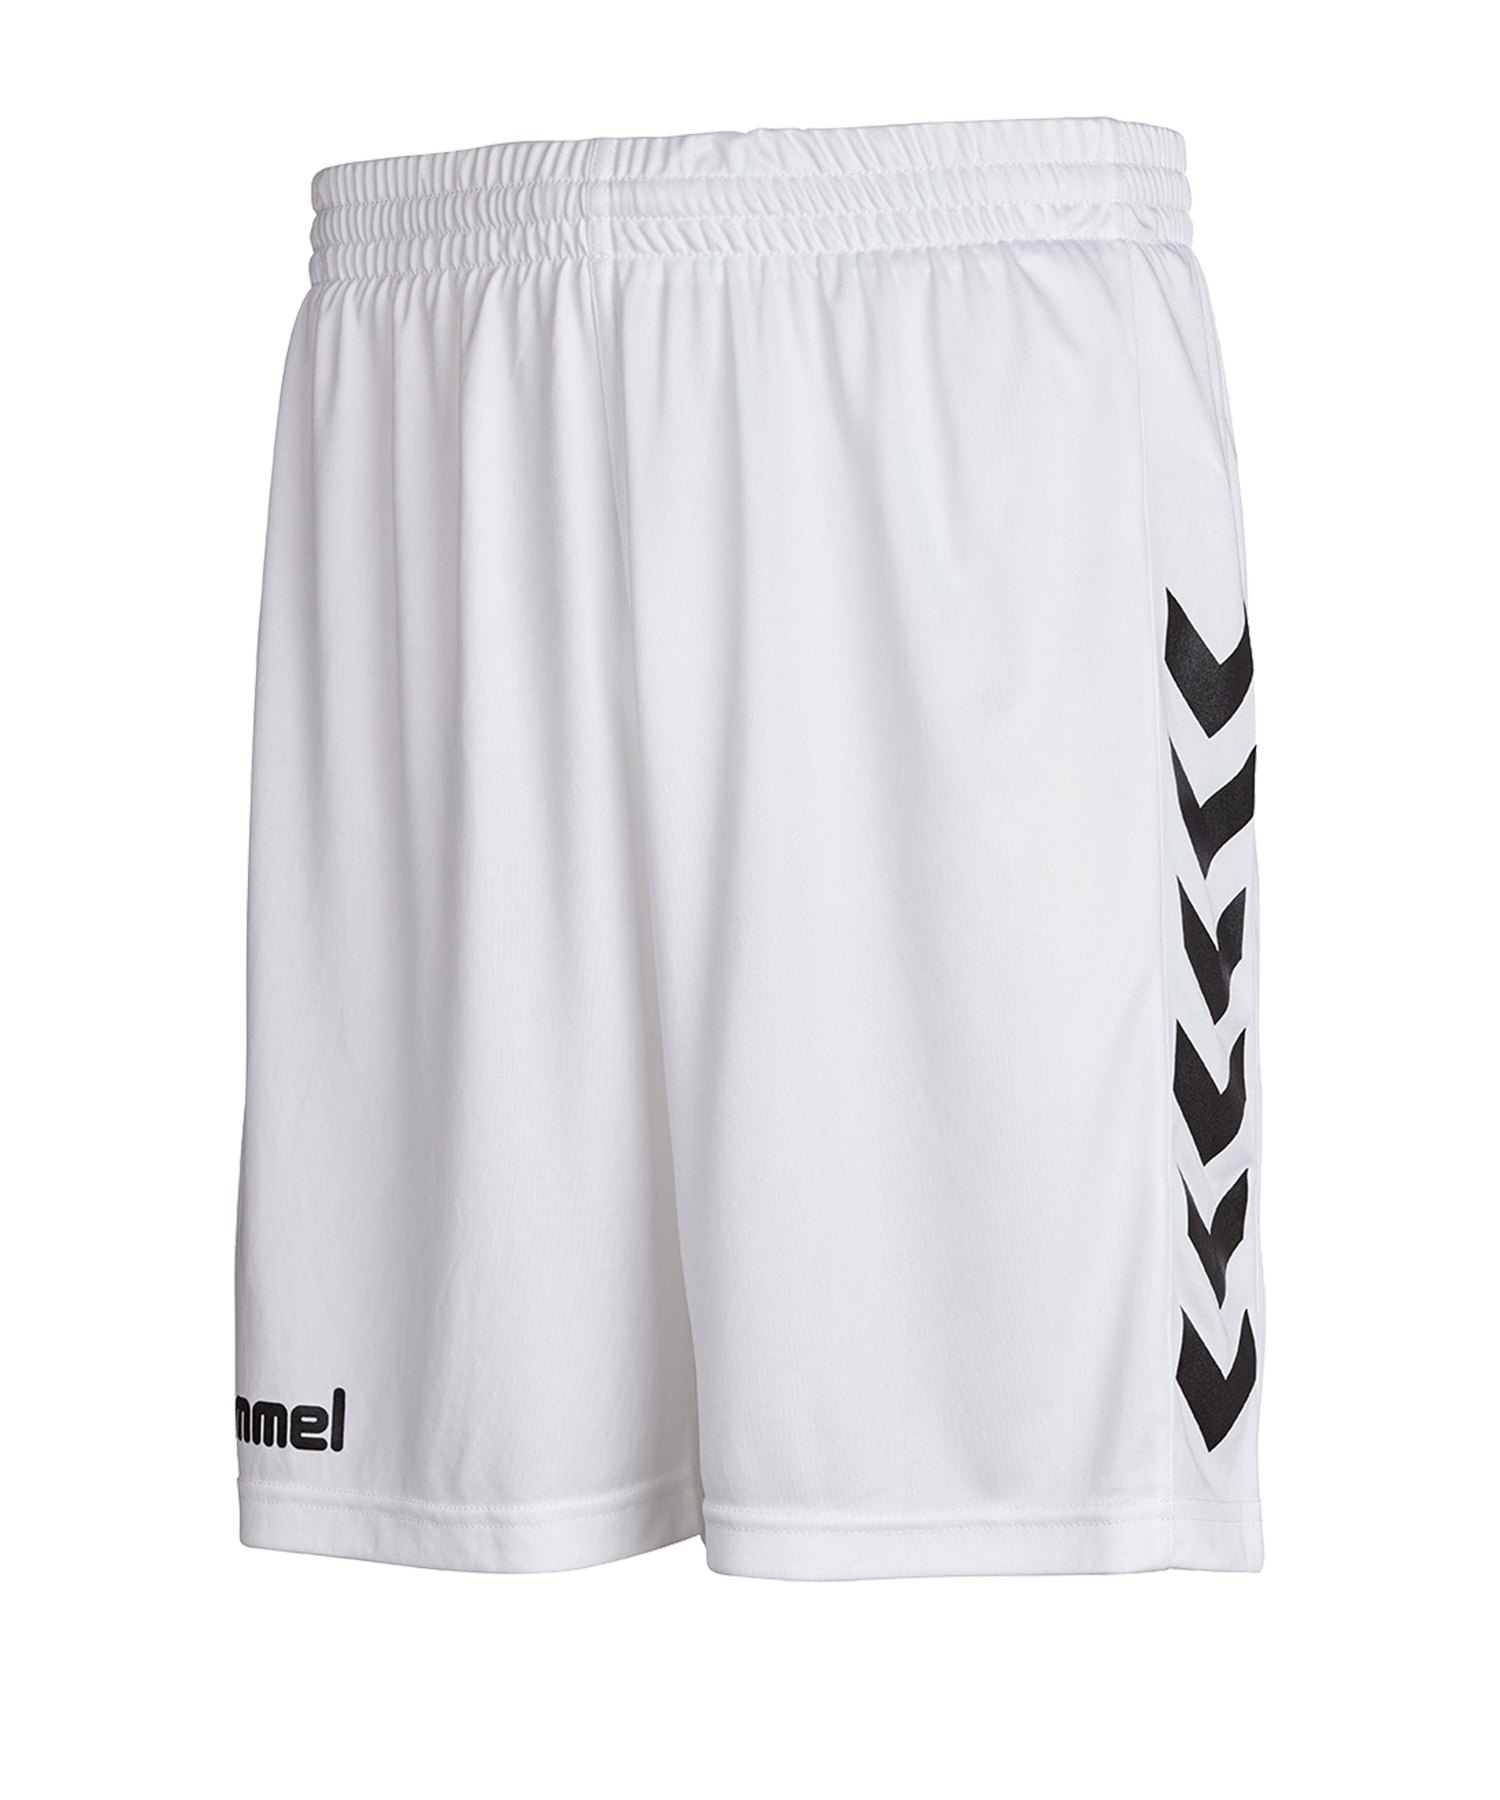 Hummel Core Short Kids Weiss F9006 - weiss